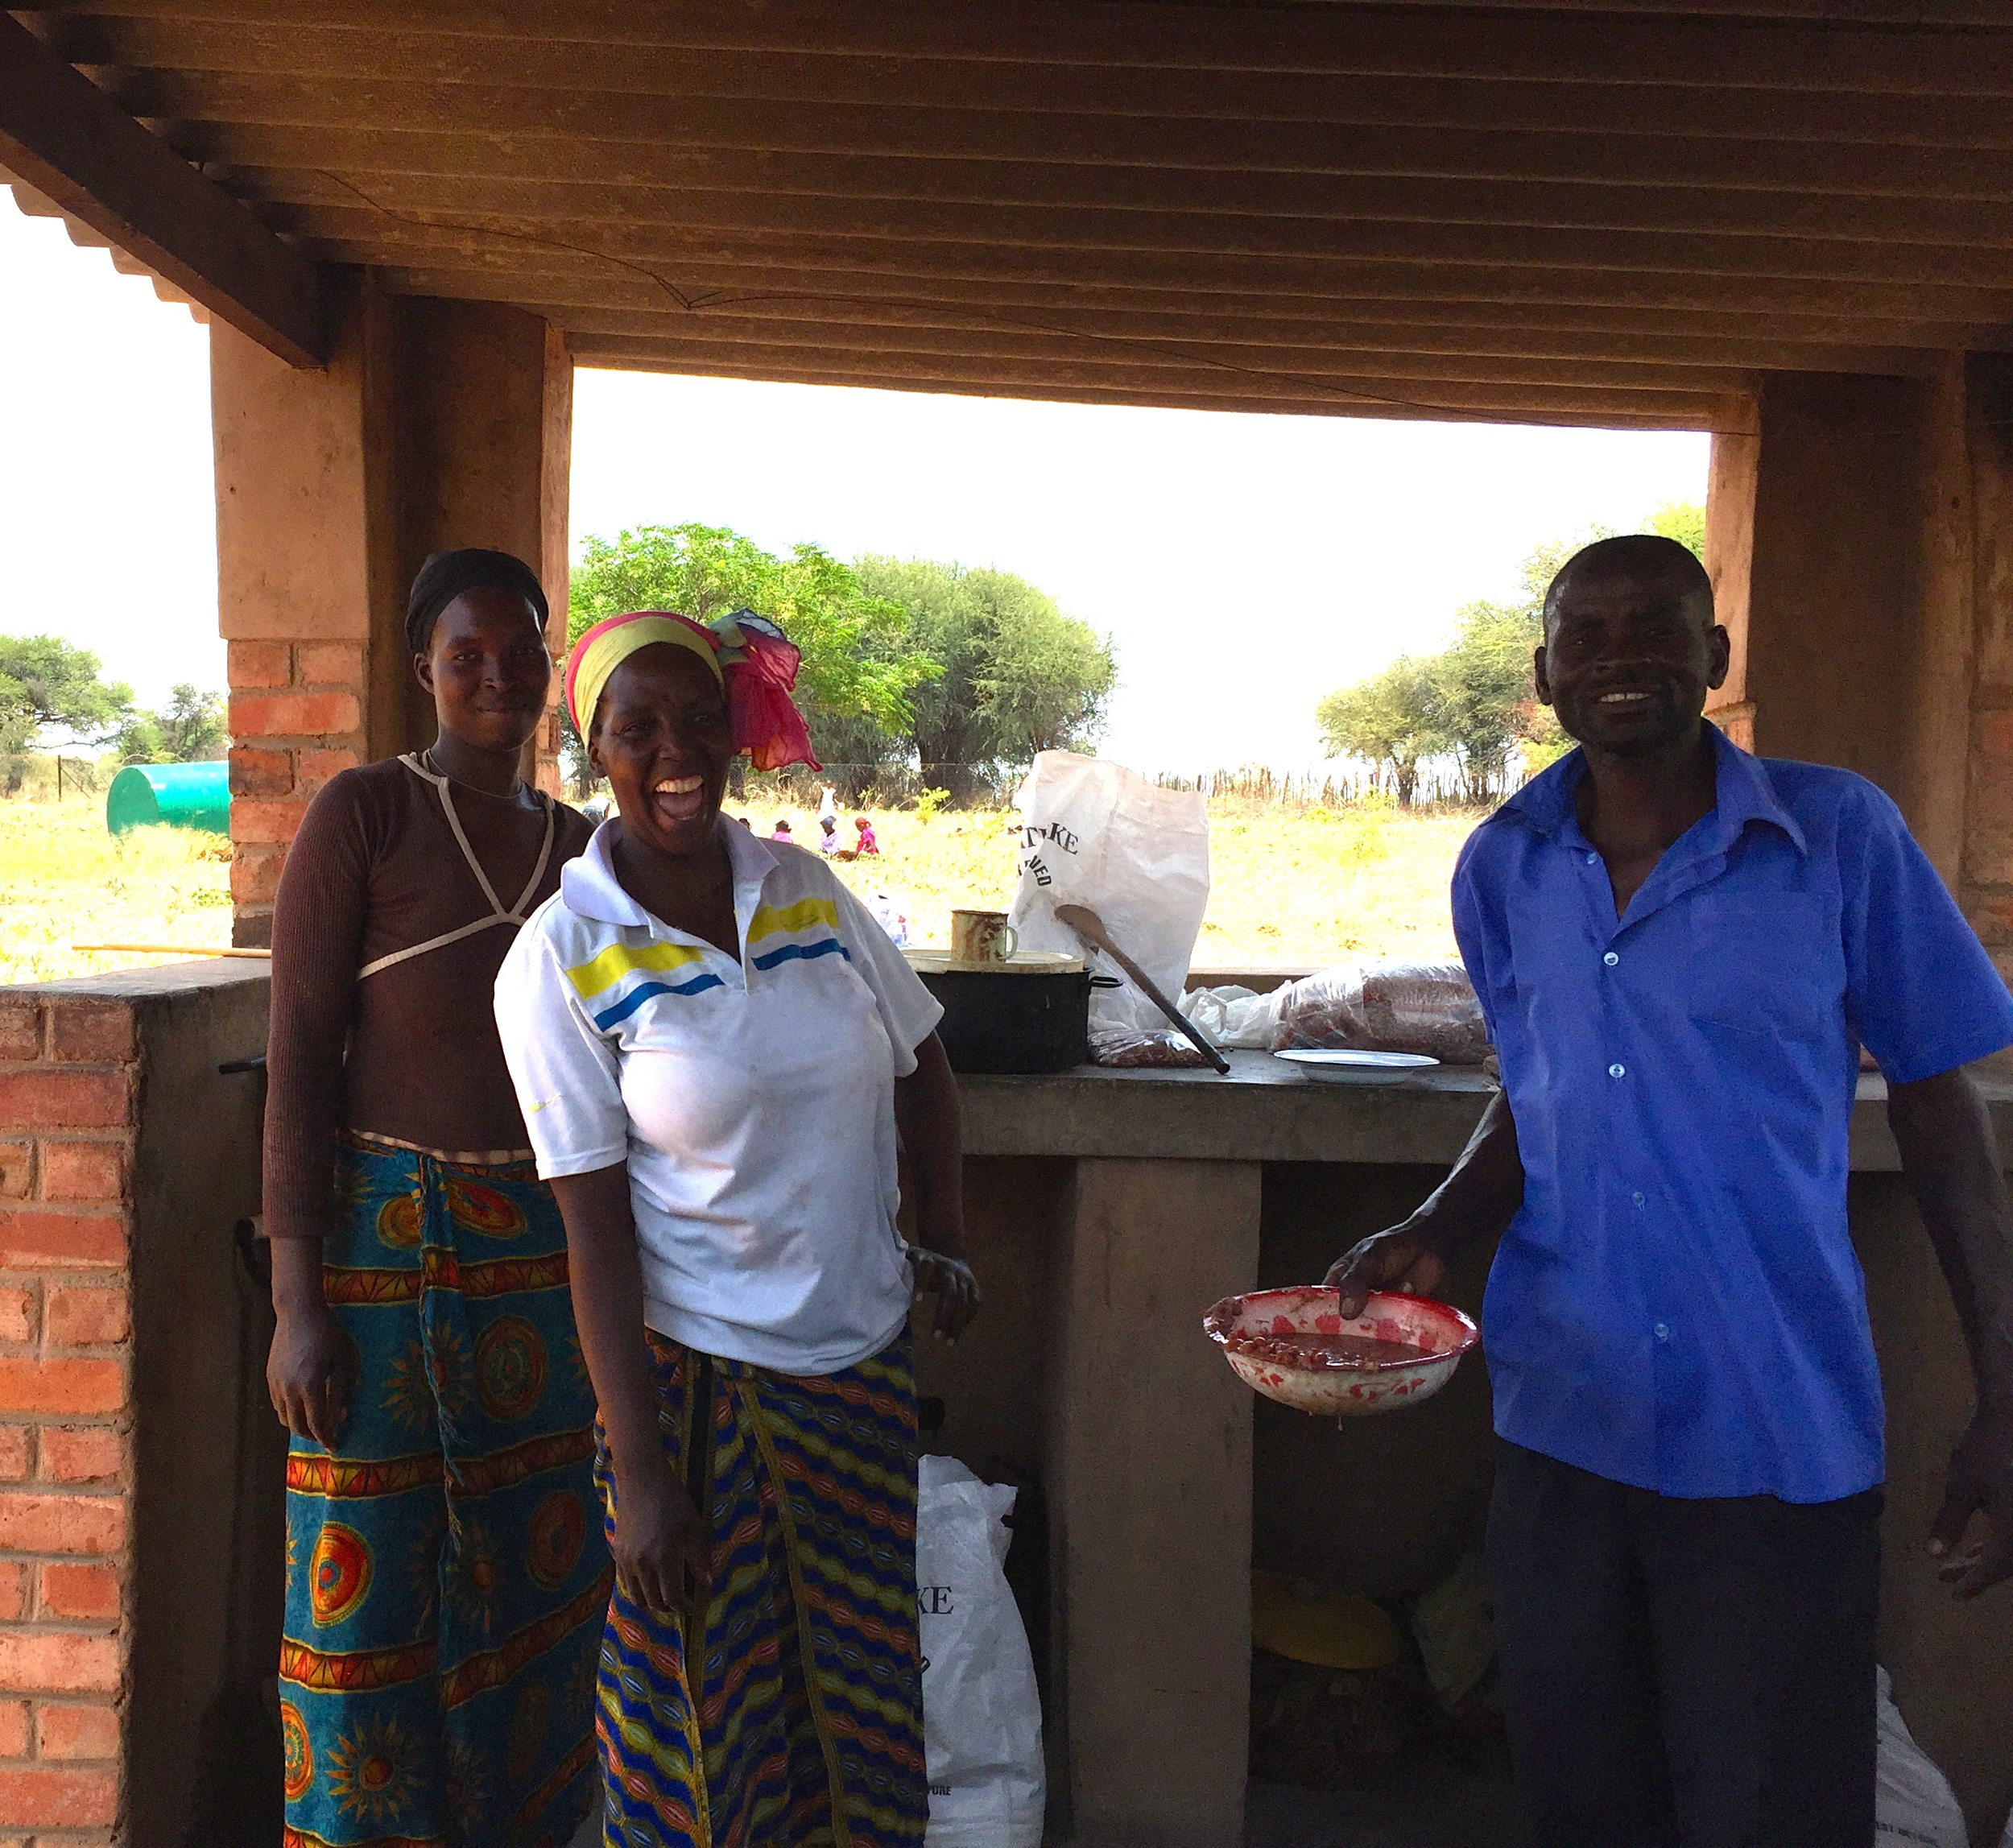 Each patient receives a free meal of sadza (cornmeal) and beans.